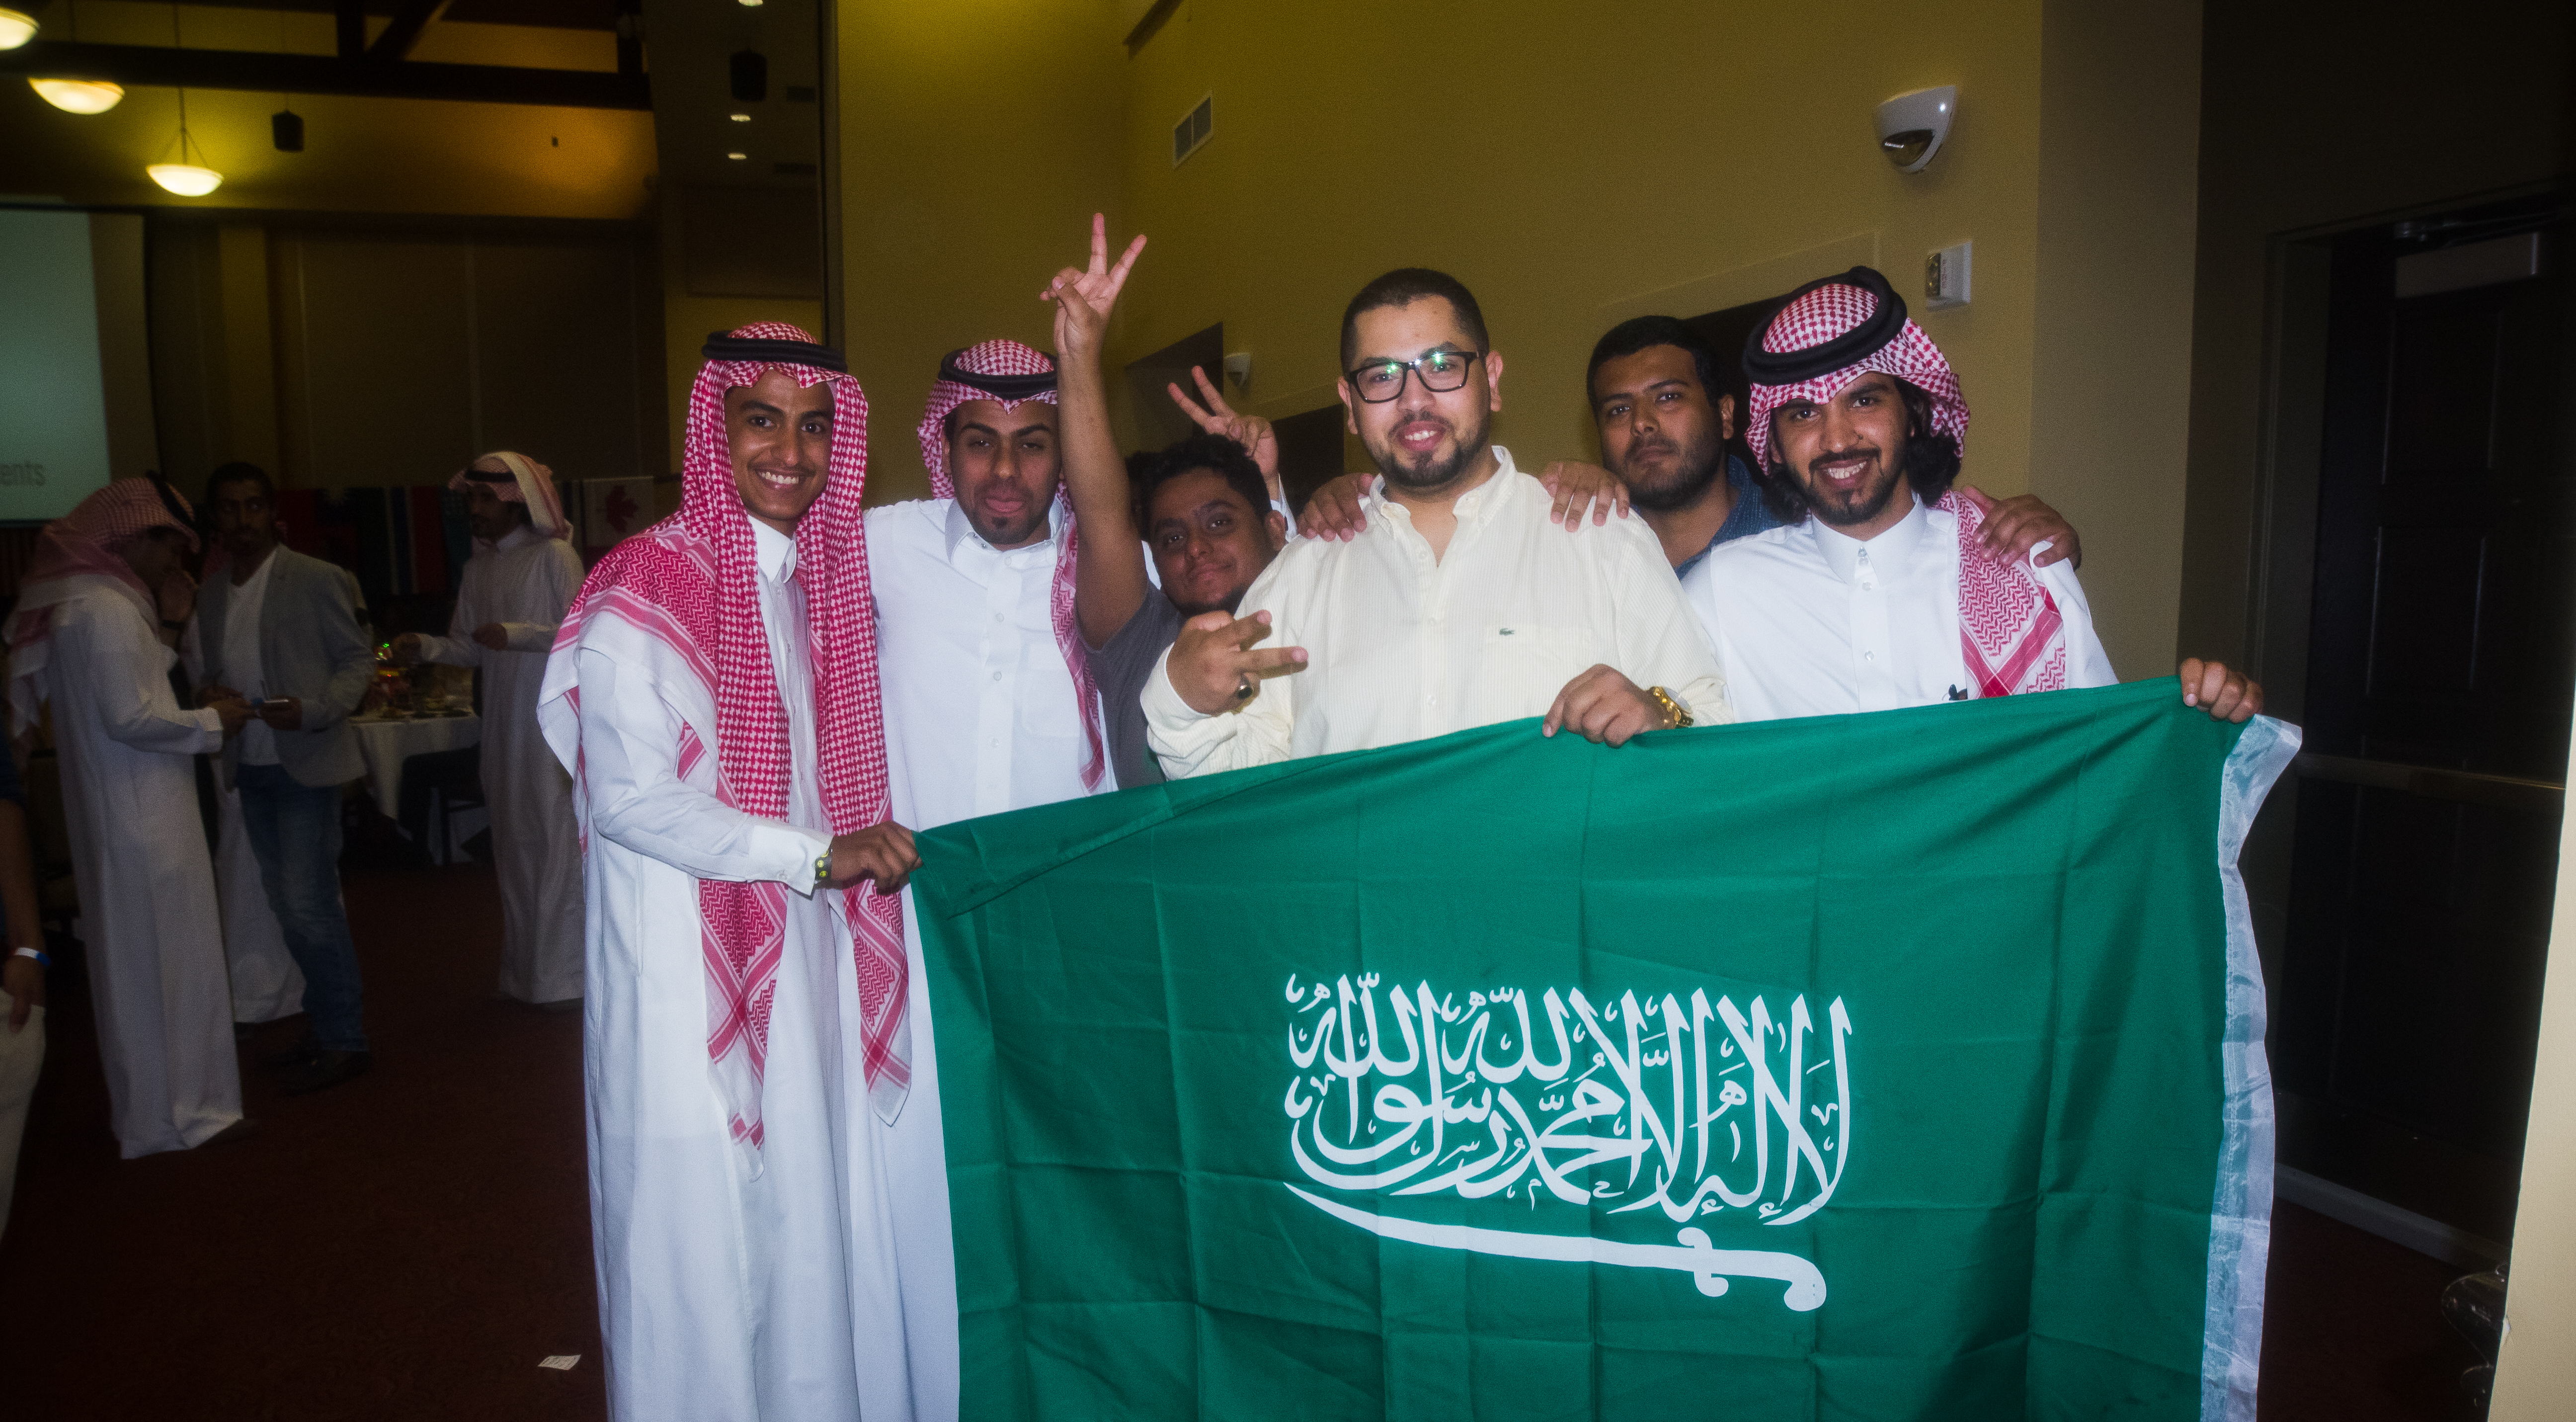 Students from Saudi Arabia